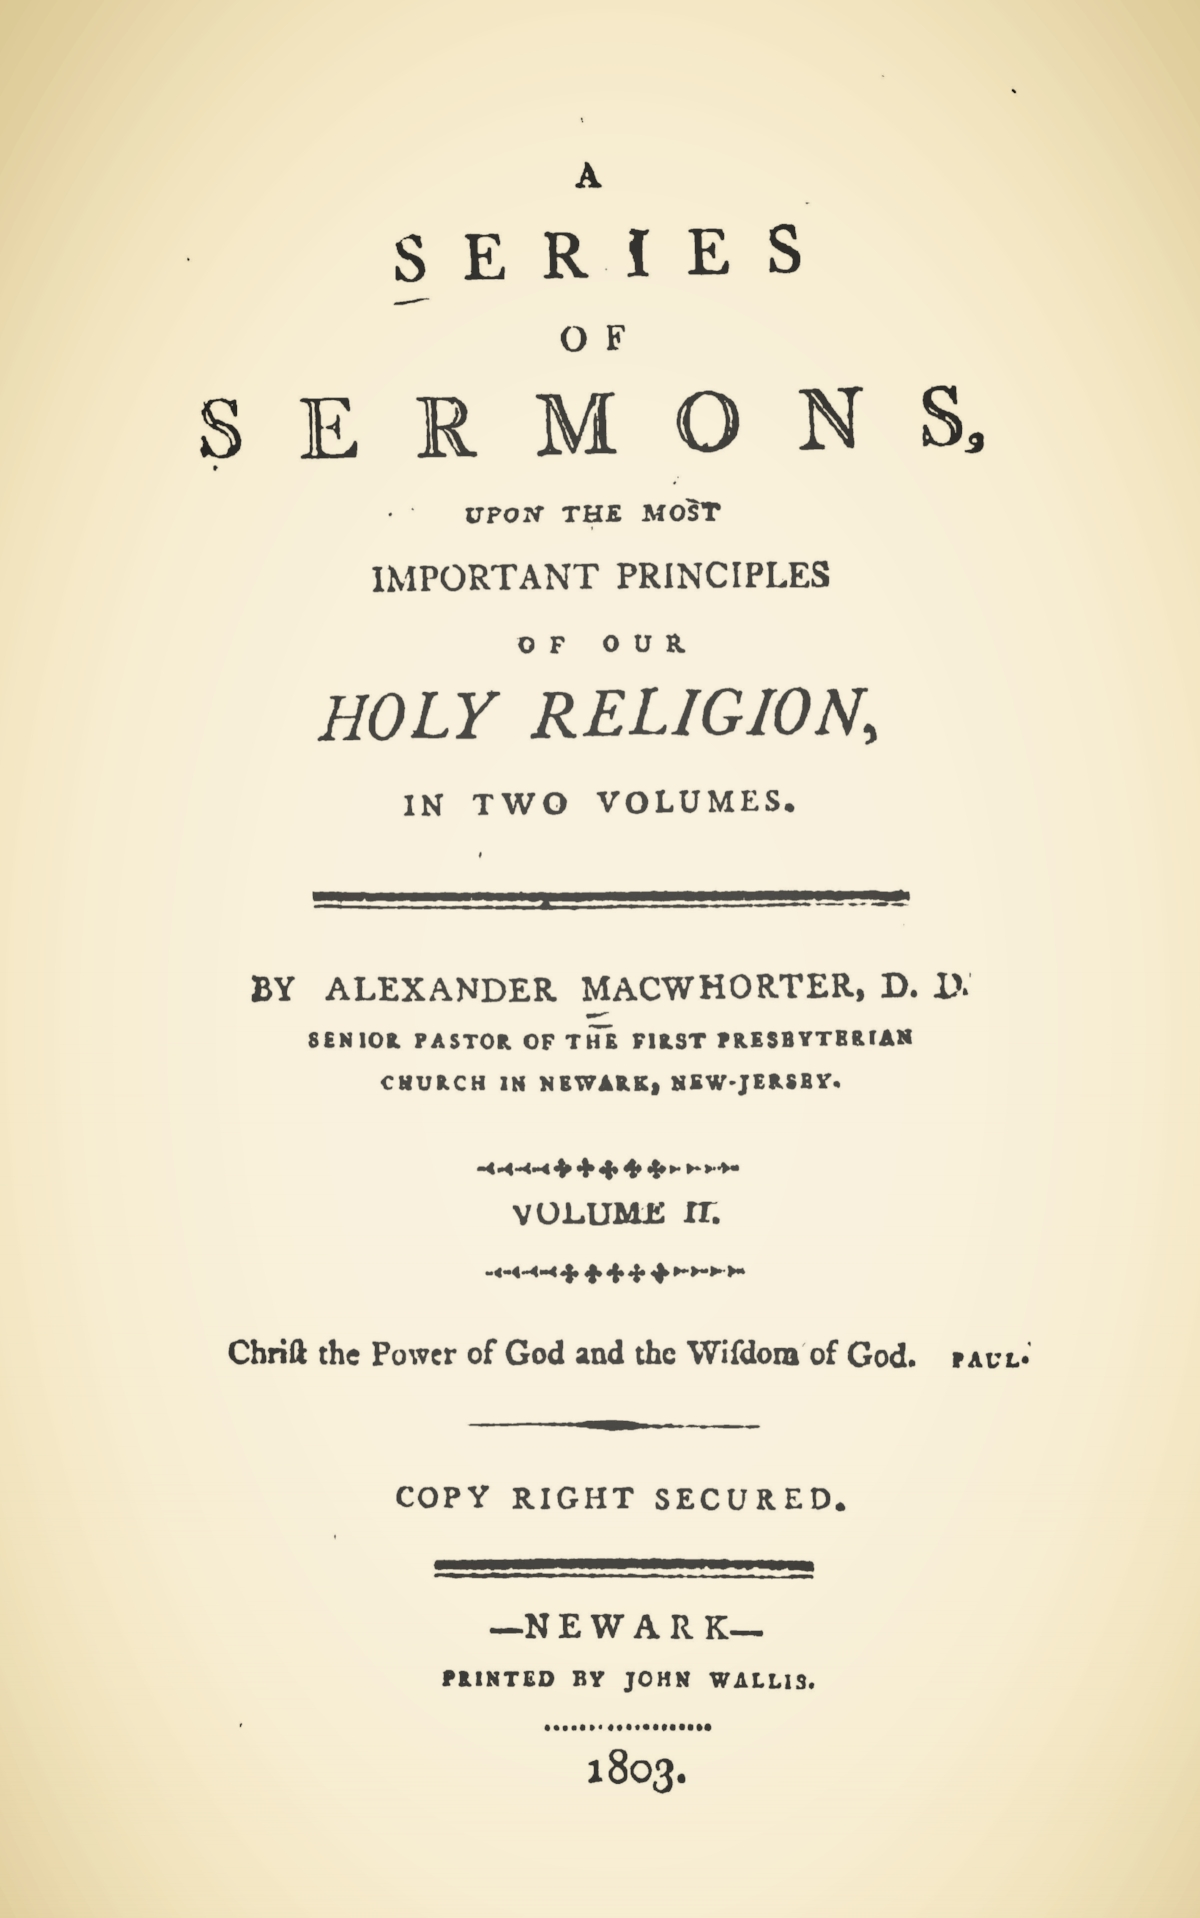 MacWhorter, Alexander, A Series of Sermons, Vol. 2 Title Page.jpg